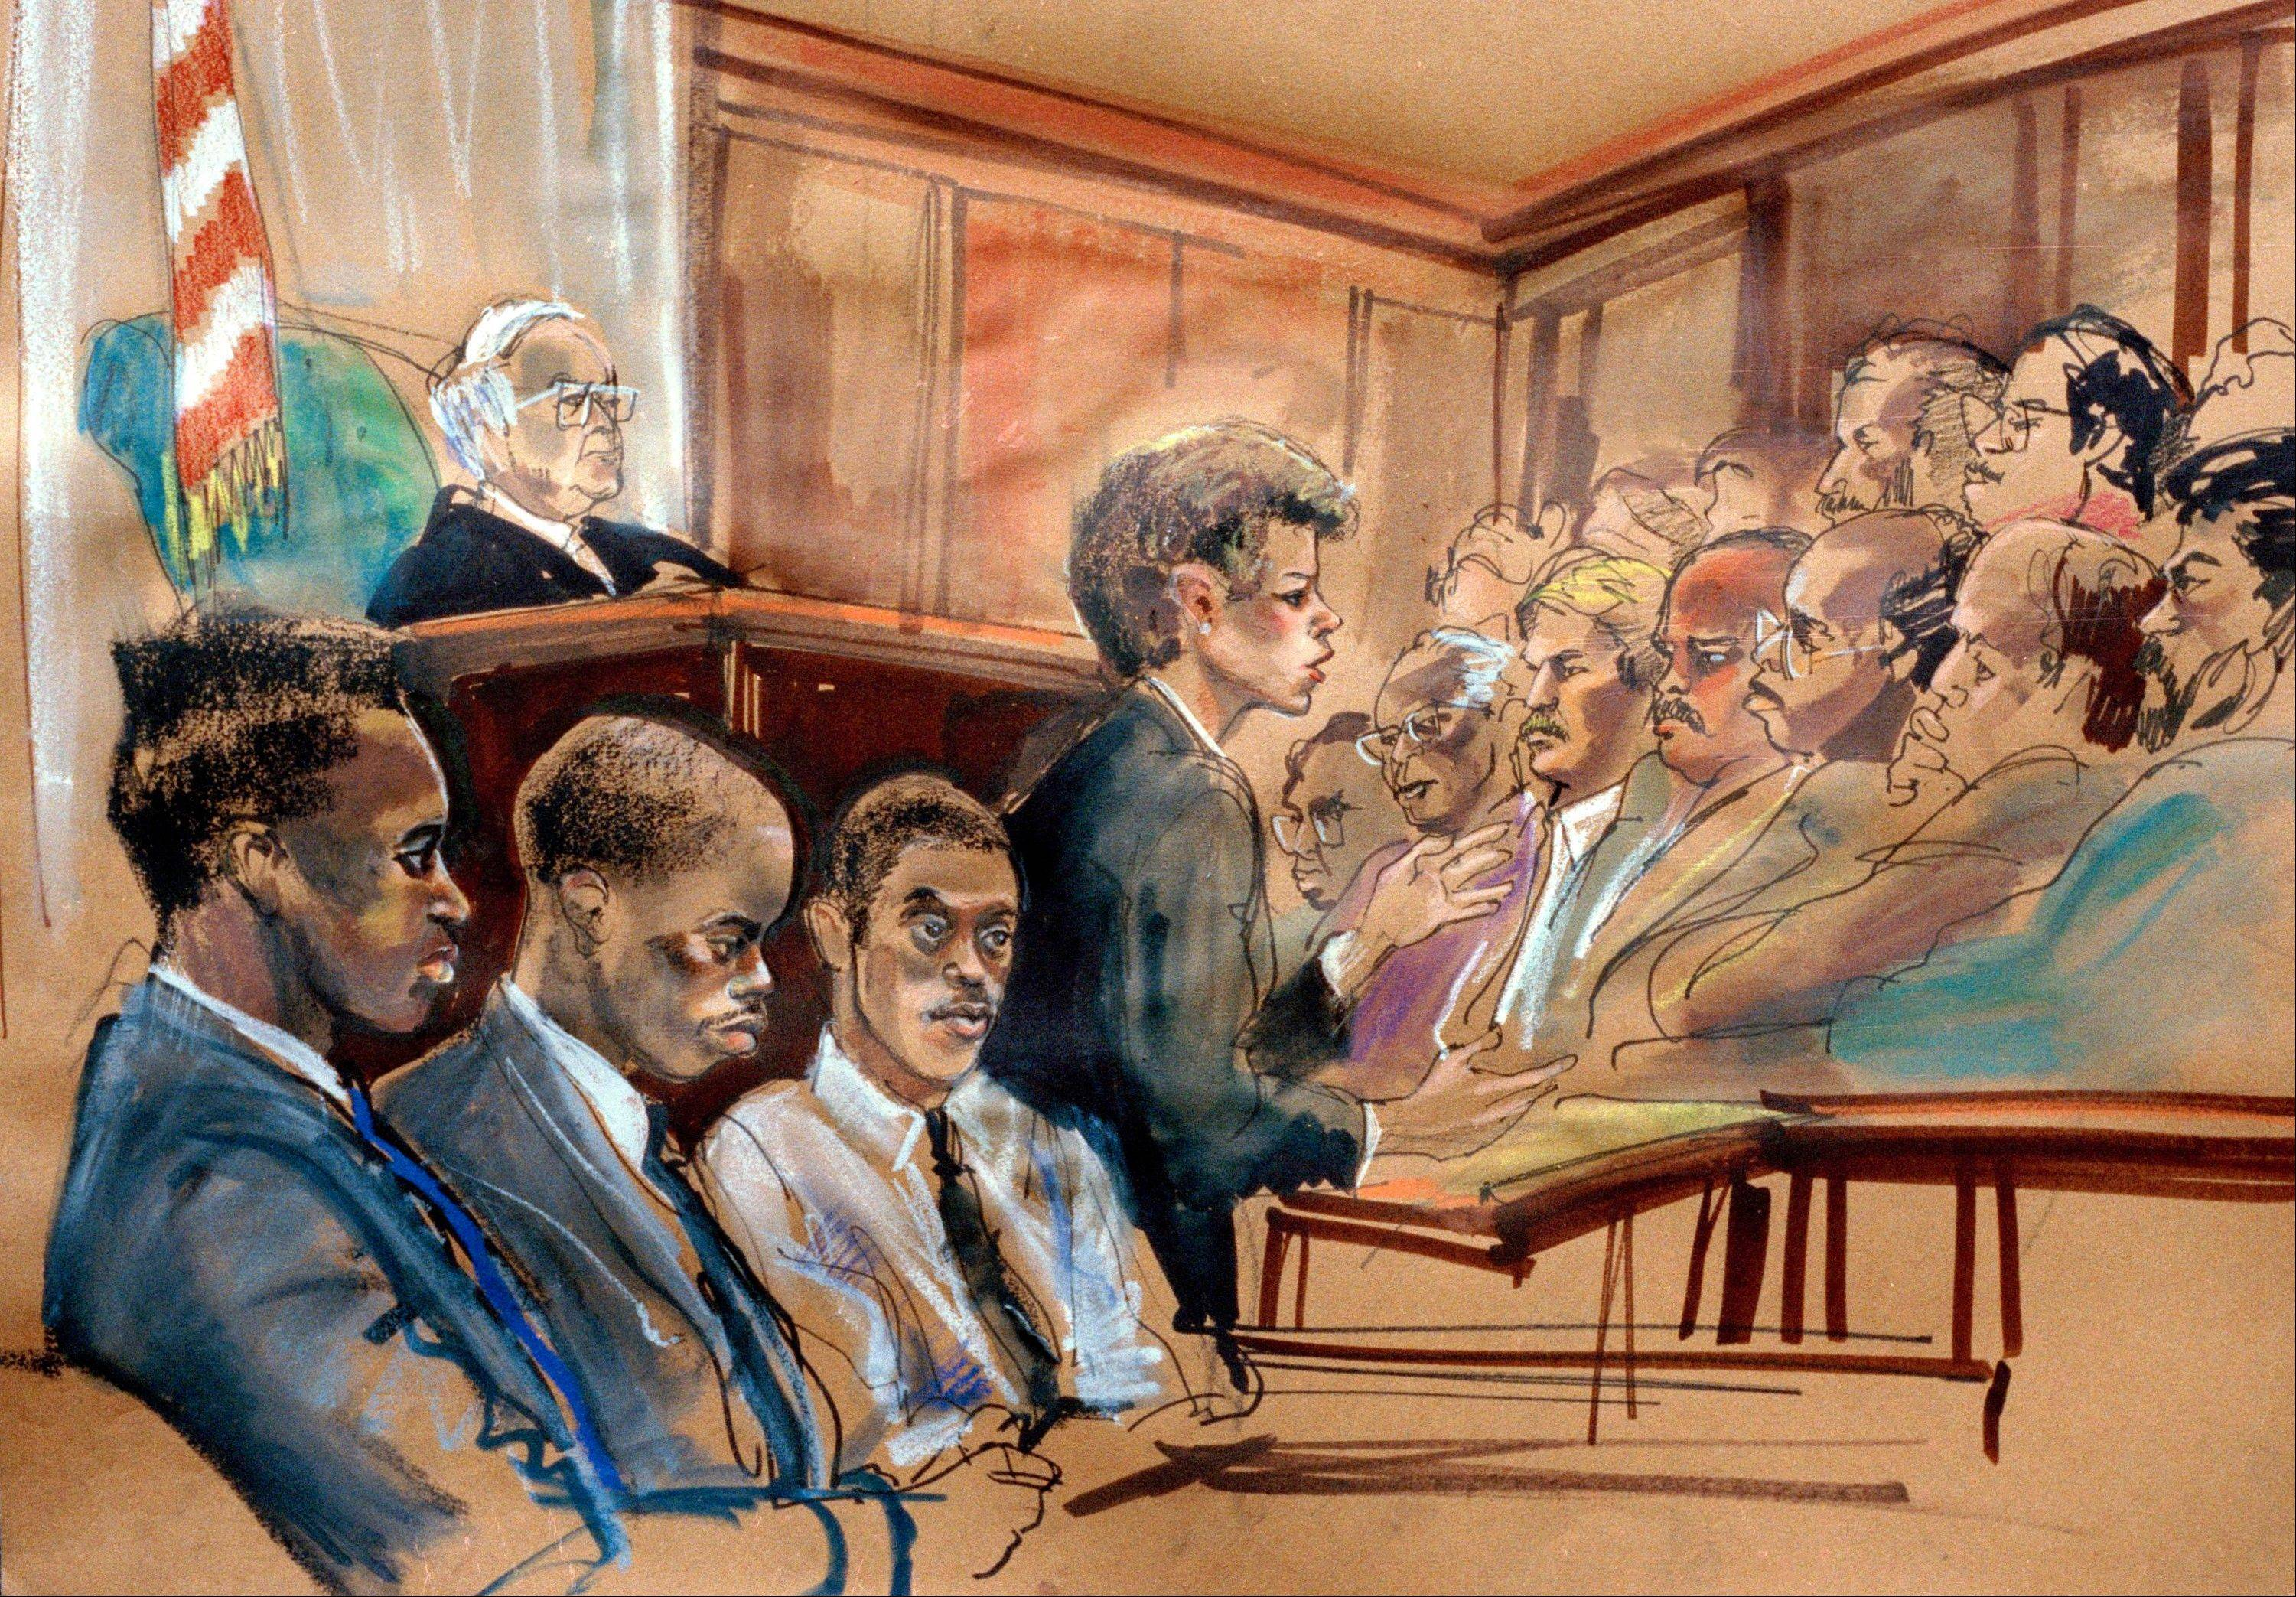 In this June 25, 1990, file photo of an artist�s rendering of the opening statements in the Central Park rape trial made in the State Supreme Court in New York, from left, defendants Yusef Salaam, Antron McCray and Raymond Santana sit in court while Assistant District Attorney Elizabeth Lederer speaks and Judge Thomas B. Galligan listens from the bench, upper left. Five teenage boys maintained their innocence as they grew up behind bars after being convicted of the rape and beating of the woman who came to be known as the Central Park jogger. Their convictions were eventually tossed out by a judge when new evidence surfaced linking someone else to the crime. But their legal battle goes on: A $250 million federal lawsuit against police and prosecutors has been pending nearly a decade, with no resolution in sight.